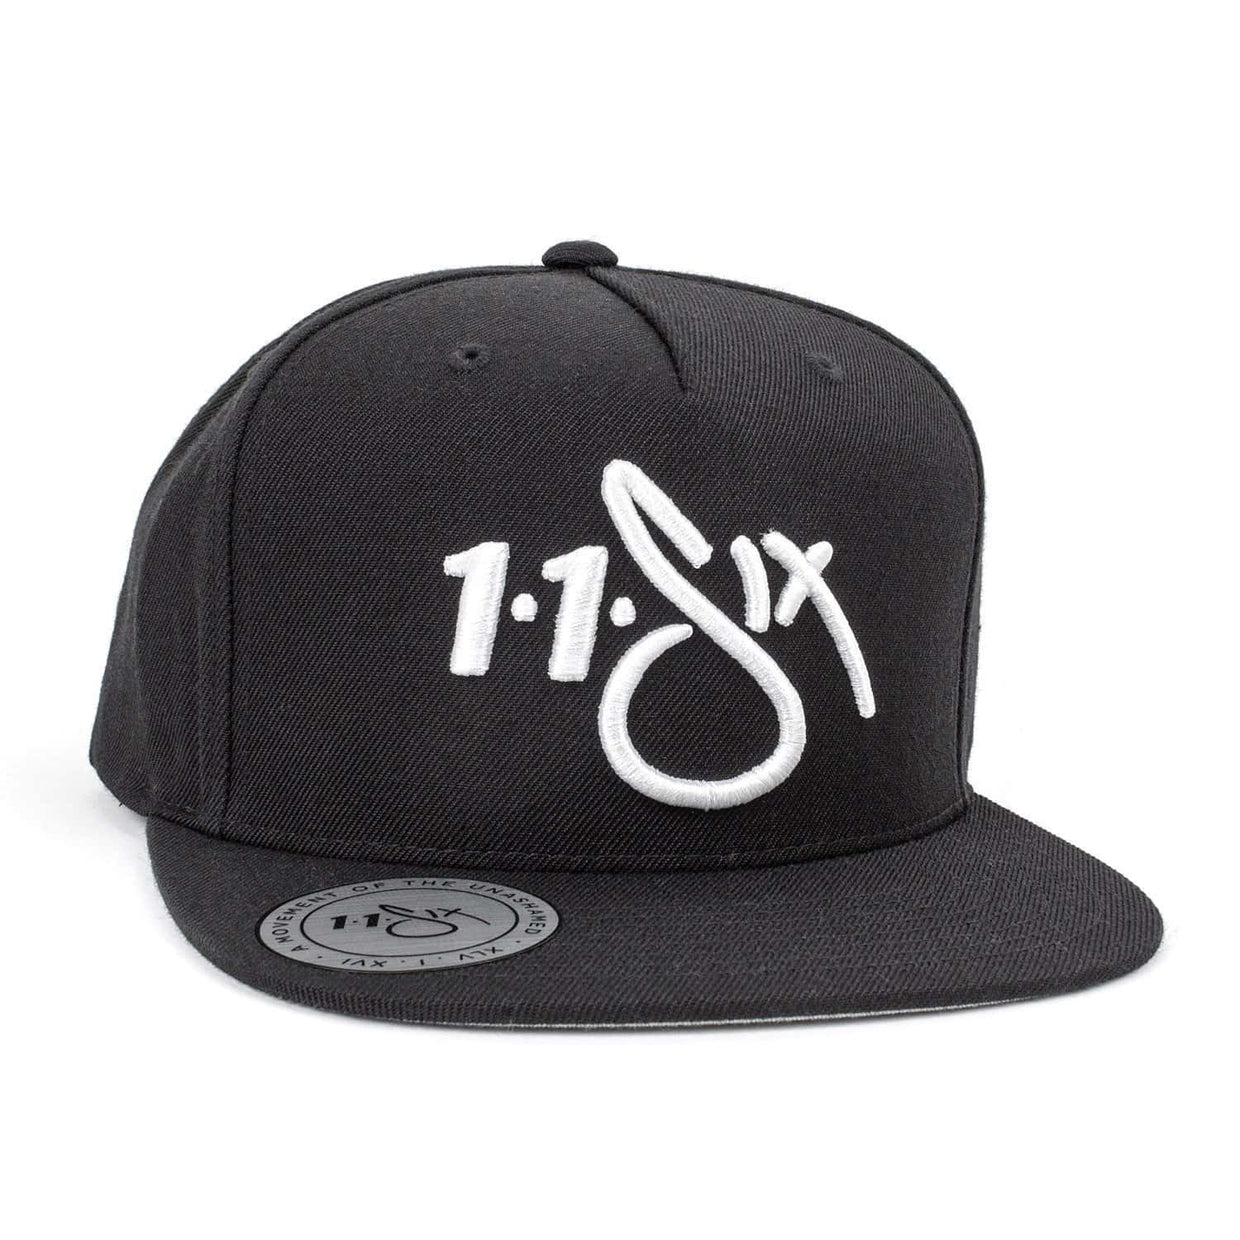 116 'Red Label' Snapback